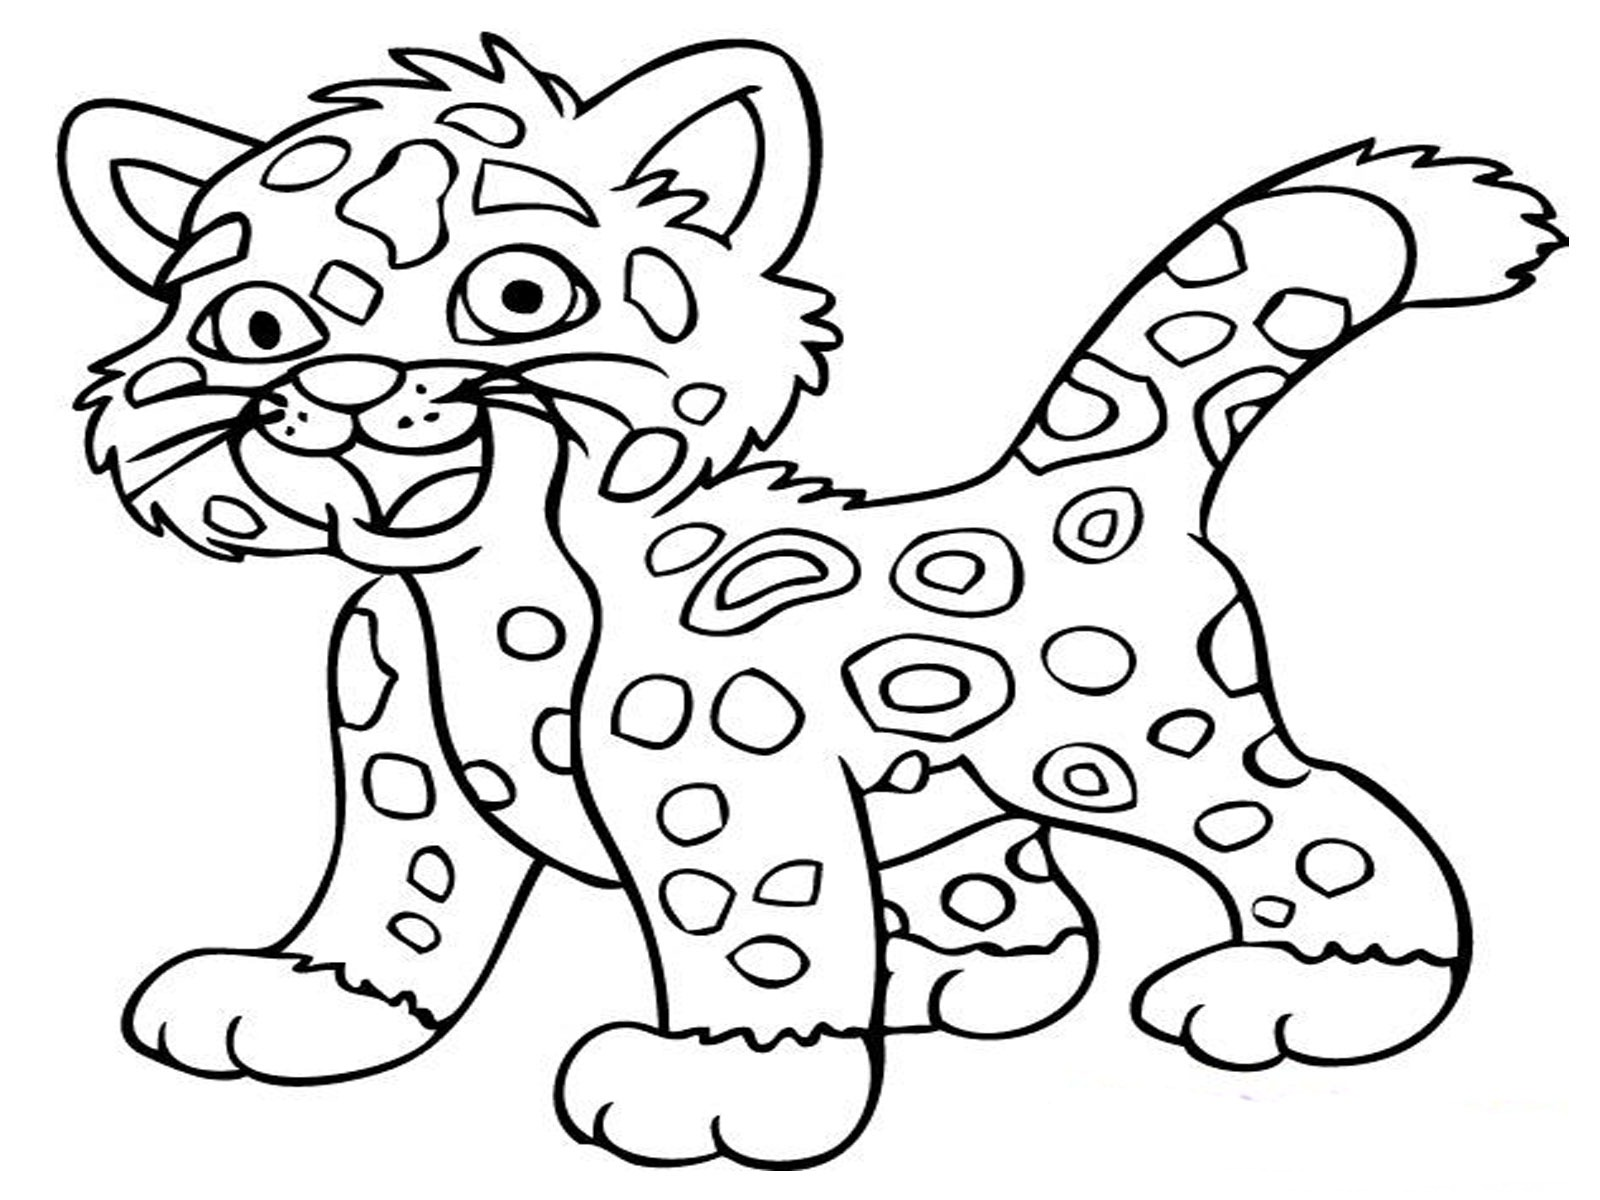 1600x1200 Coloring Pages Of Stuffed Animals